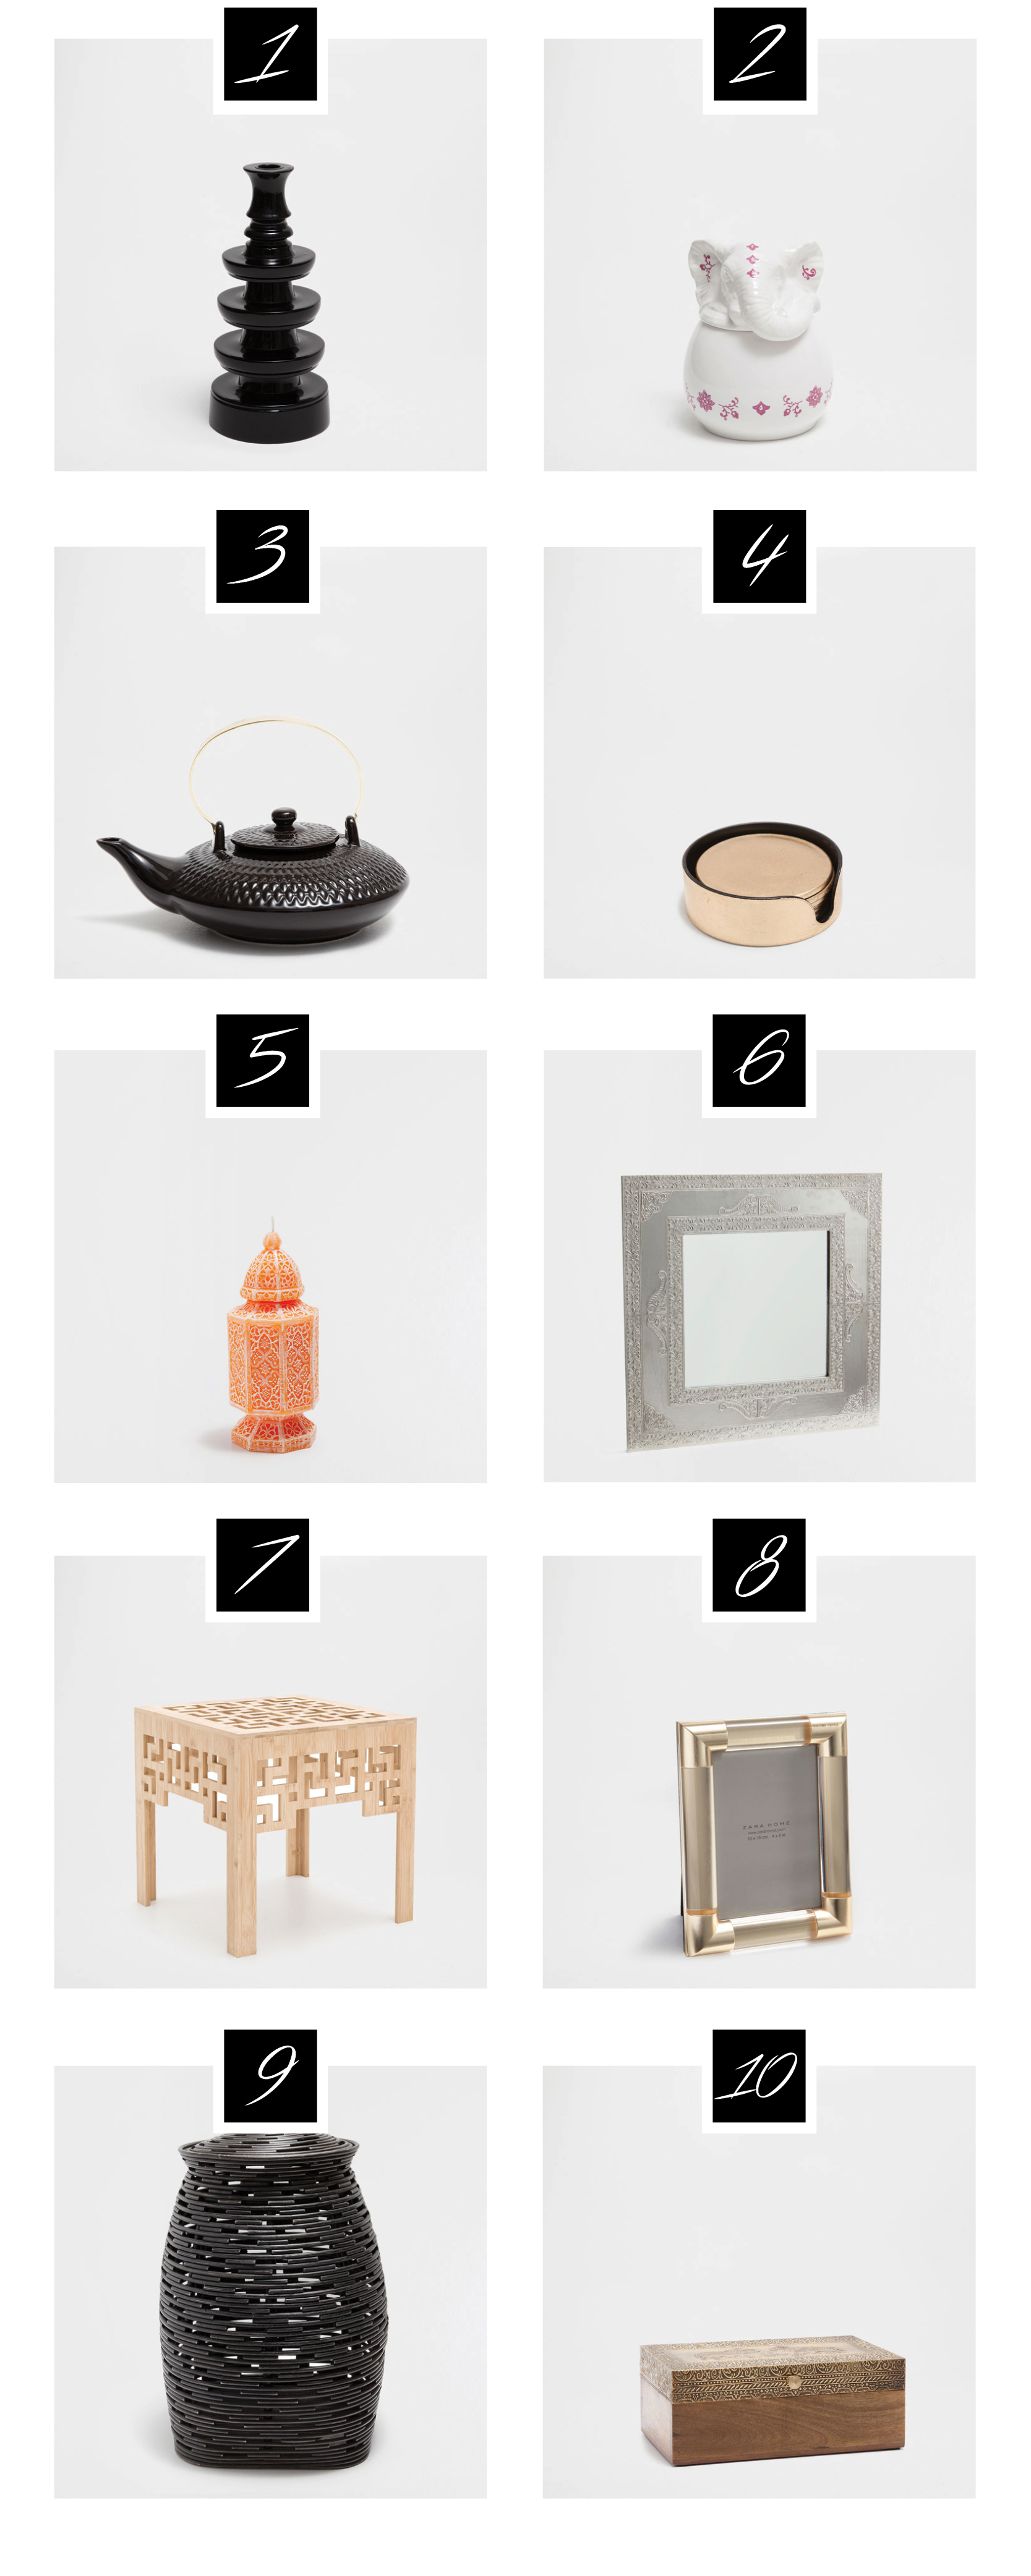 Nina\'s Favorite Finds from Zara Home - Contour Interior Design